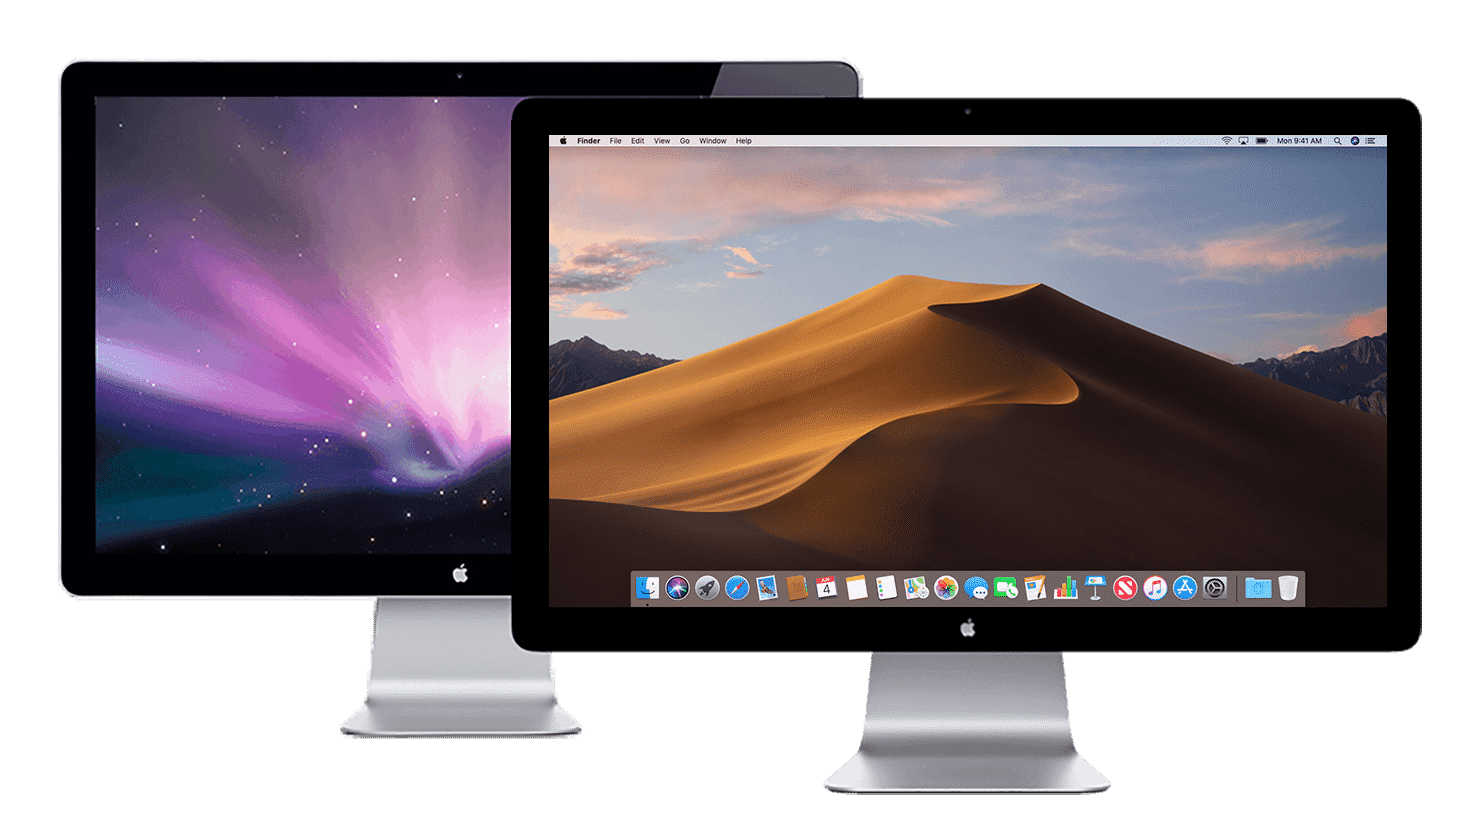 Bericht: Neues Apple-Display mit 31,6 Zoll und Mini-LED-Technik in der Pipeline